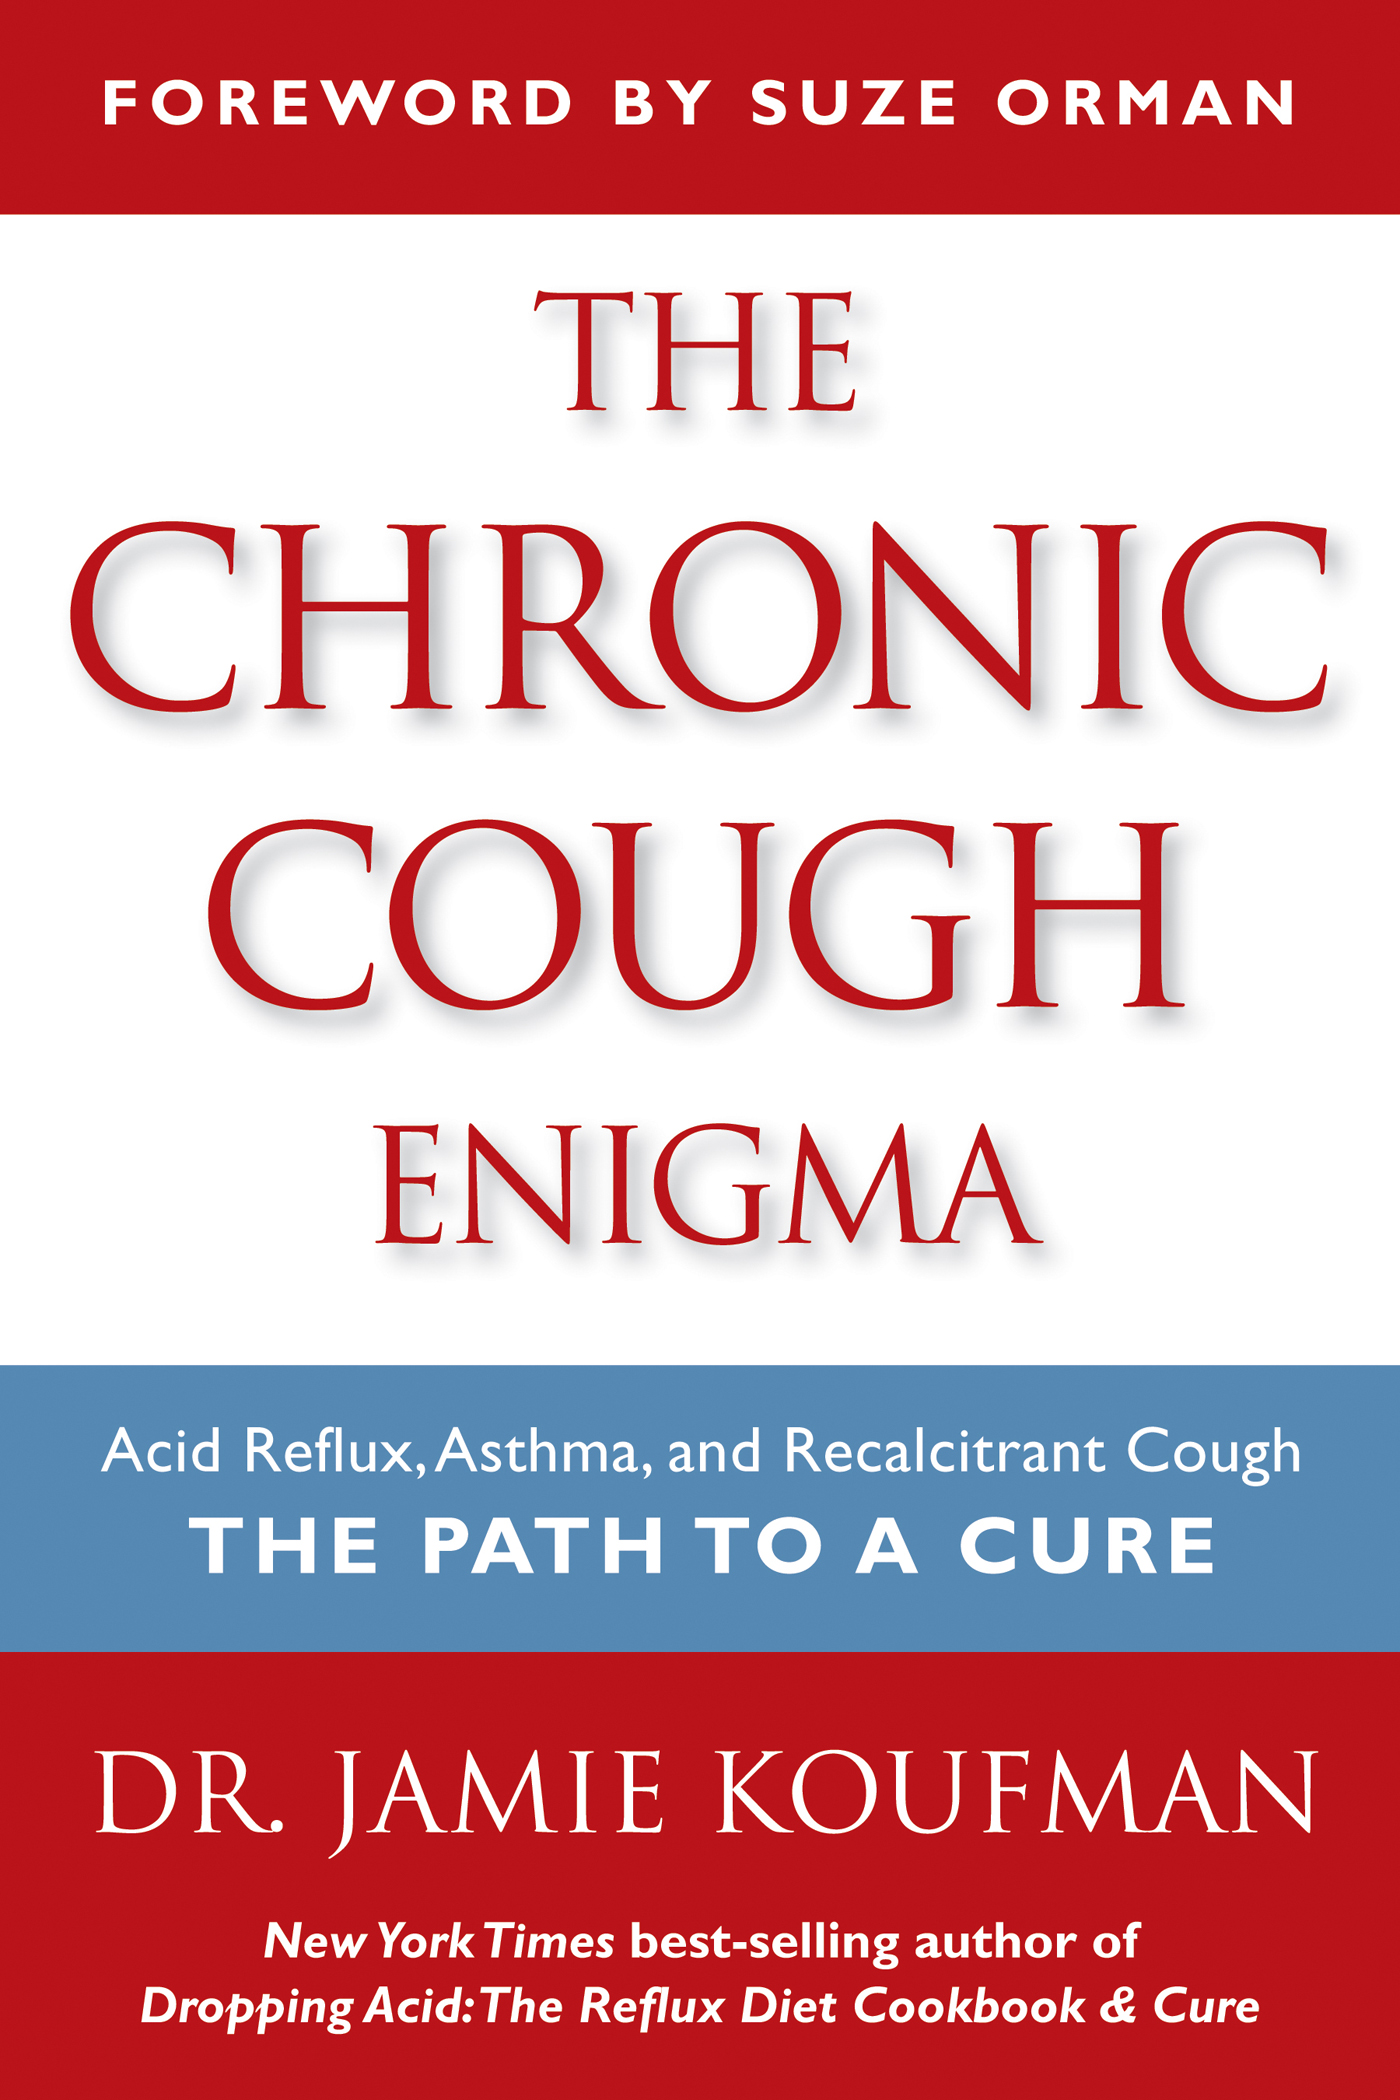 Chronic cough enigma 9781940561004 hr